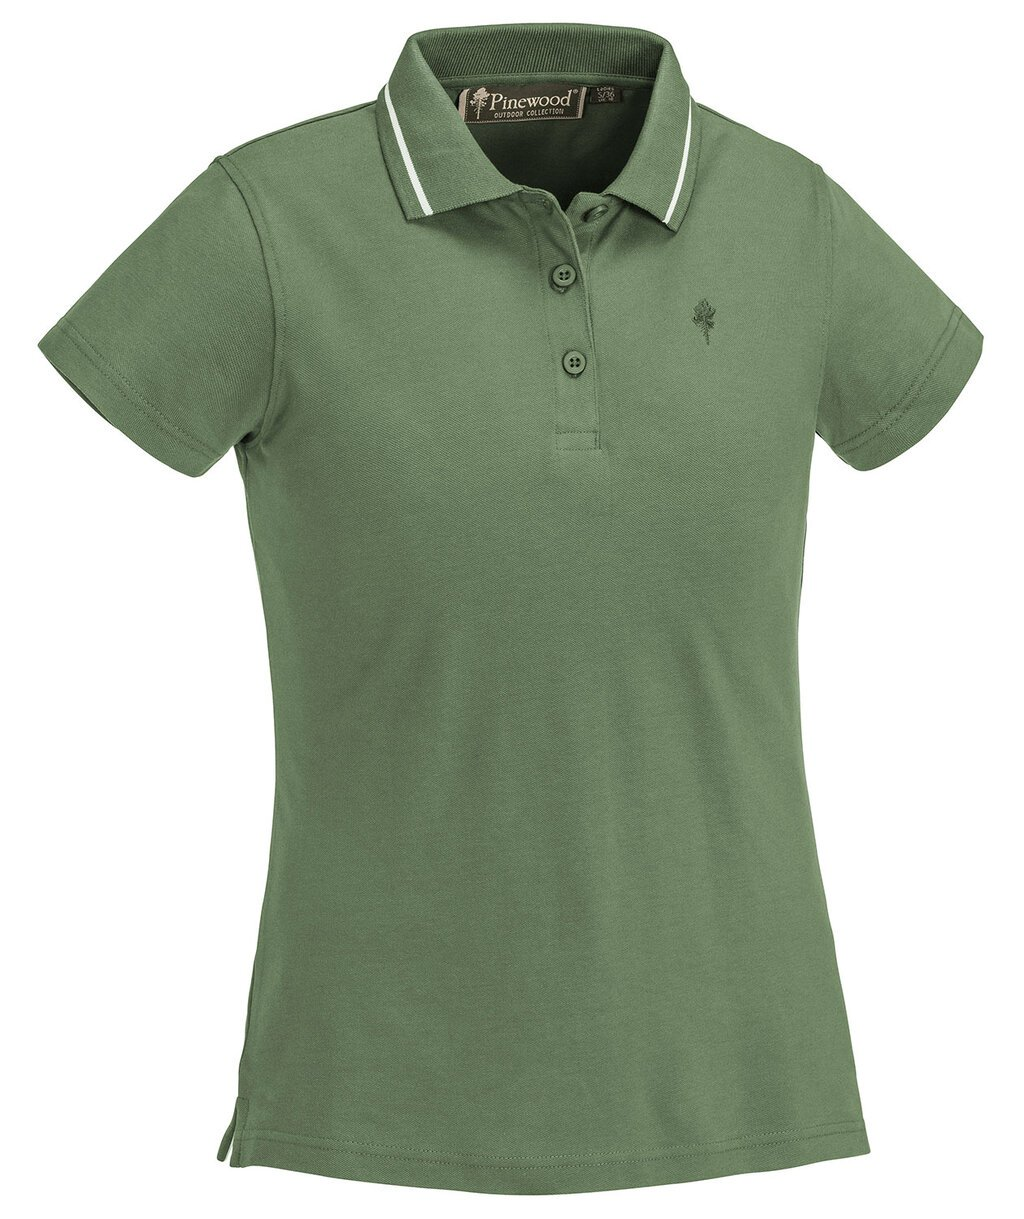 Pinewood Outdoor Life dame polo T-shirt, Mid. green